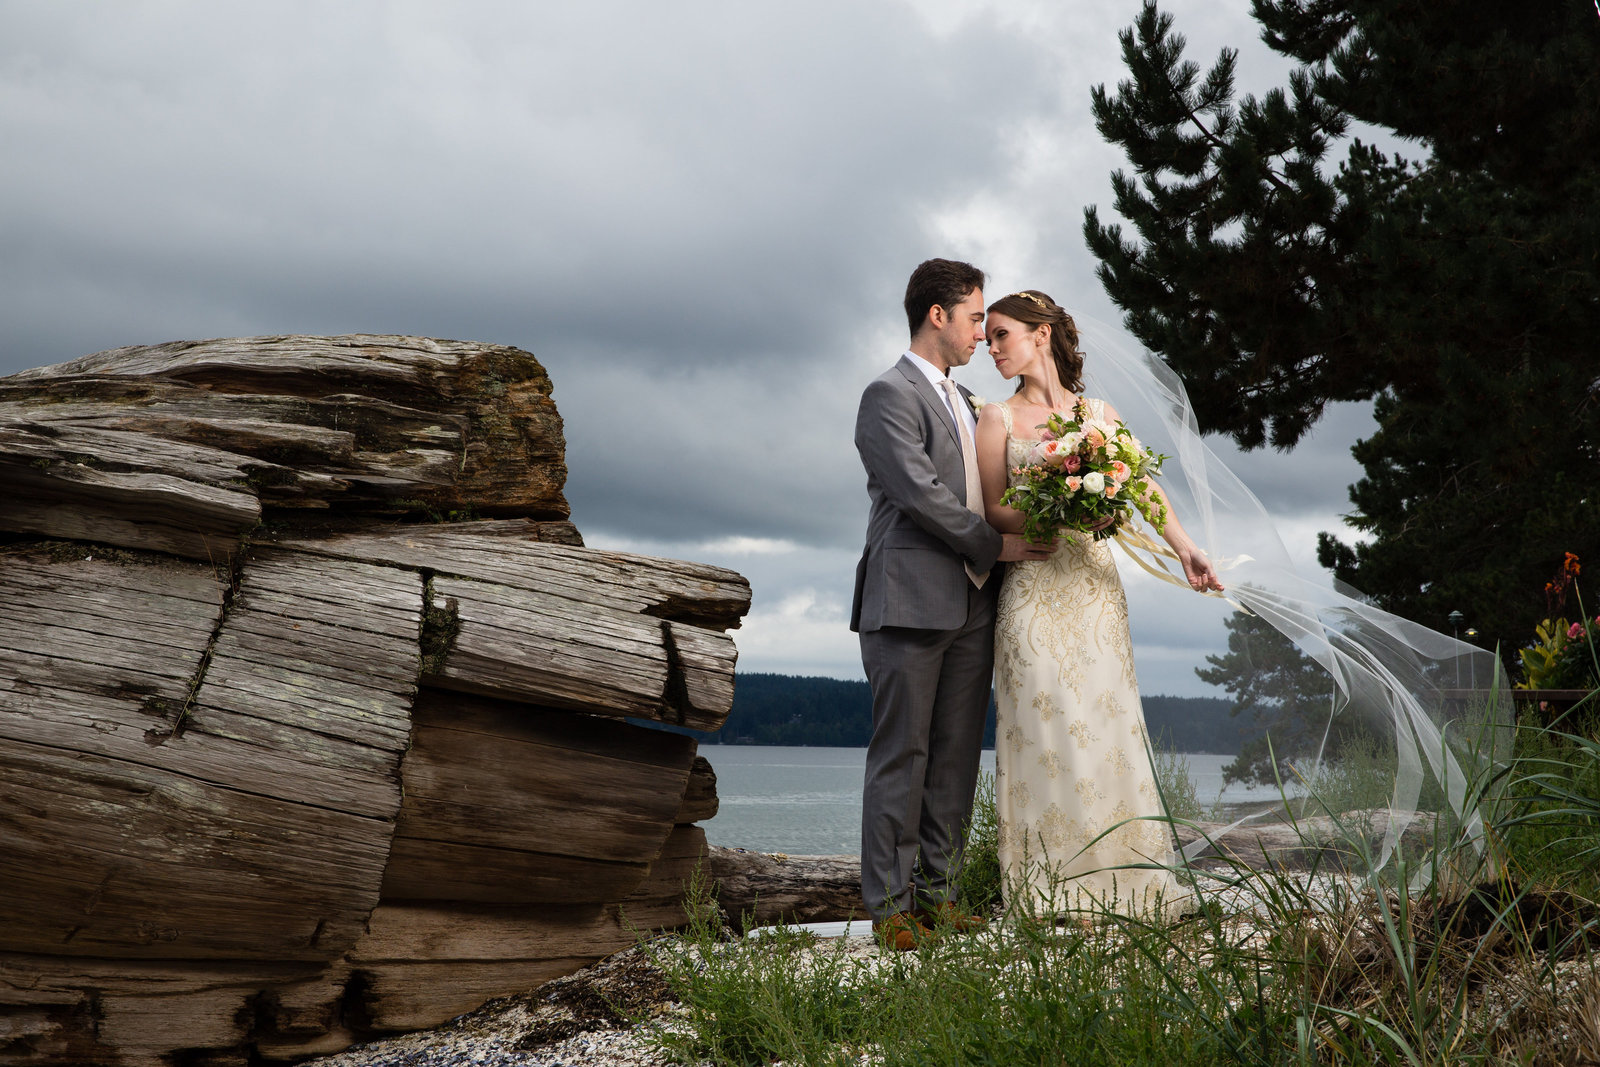 adventurous wedding by lake with driftwood